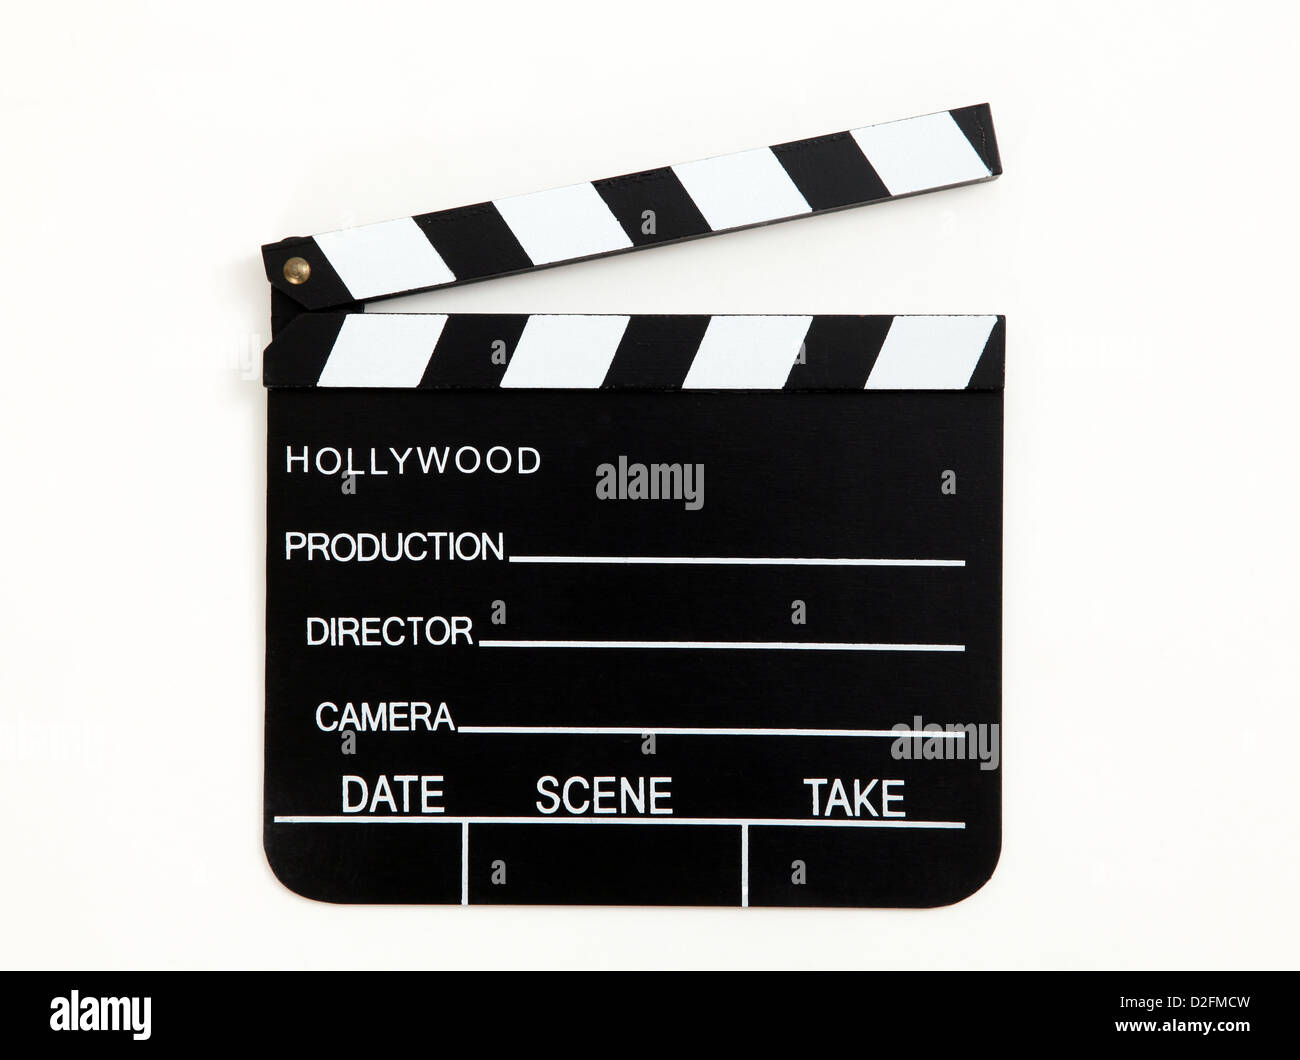 Hollywood Clapperboard - Stock Image